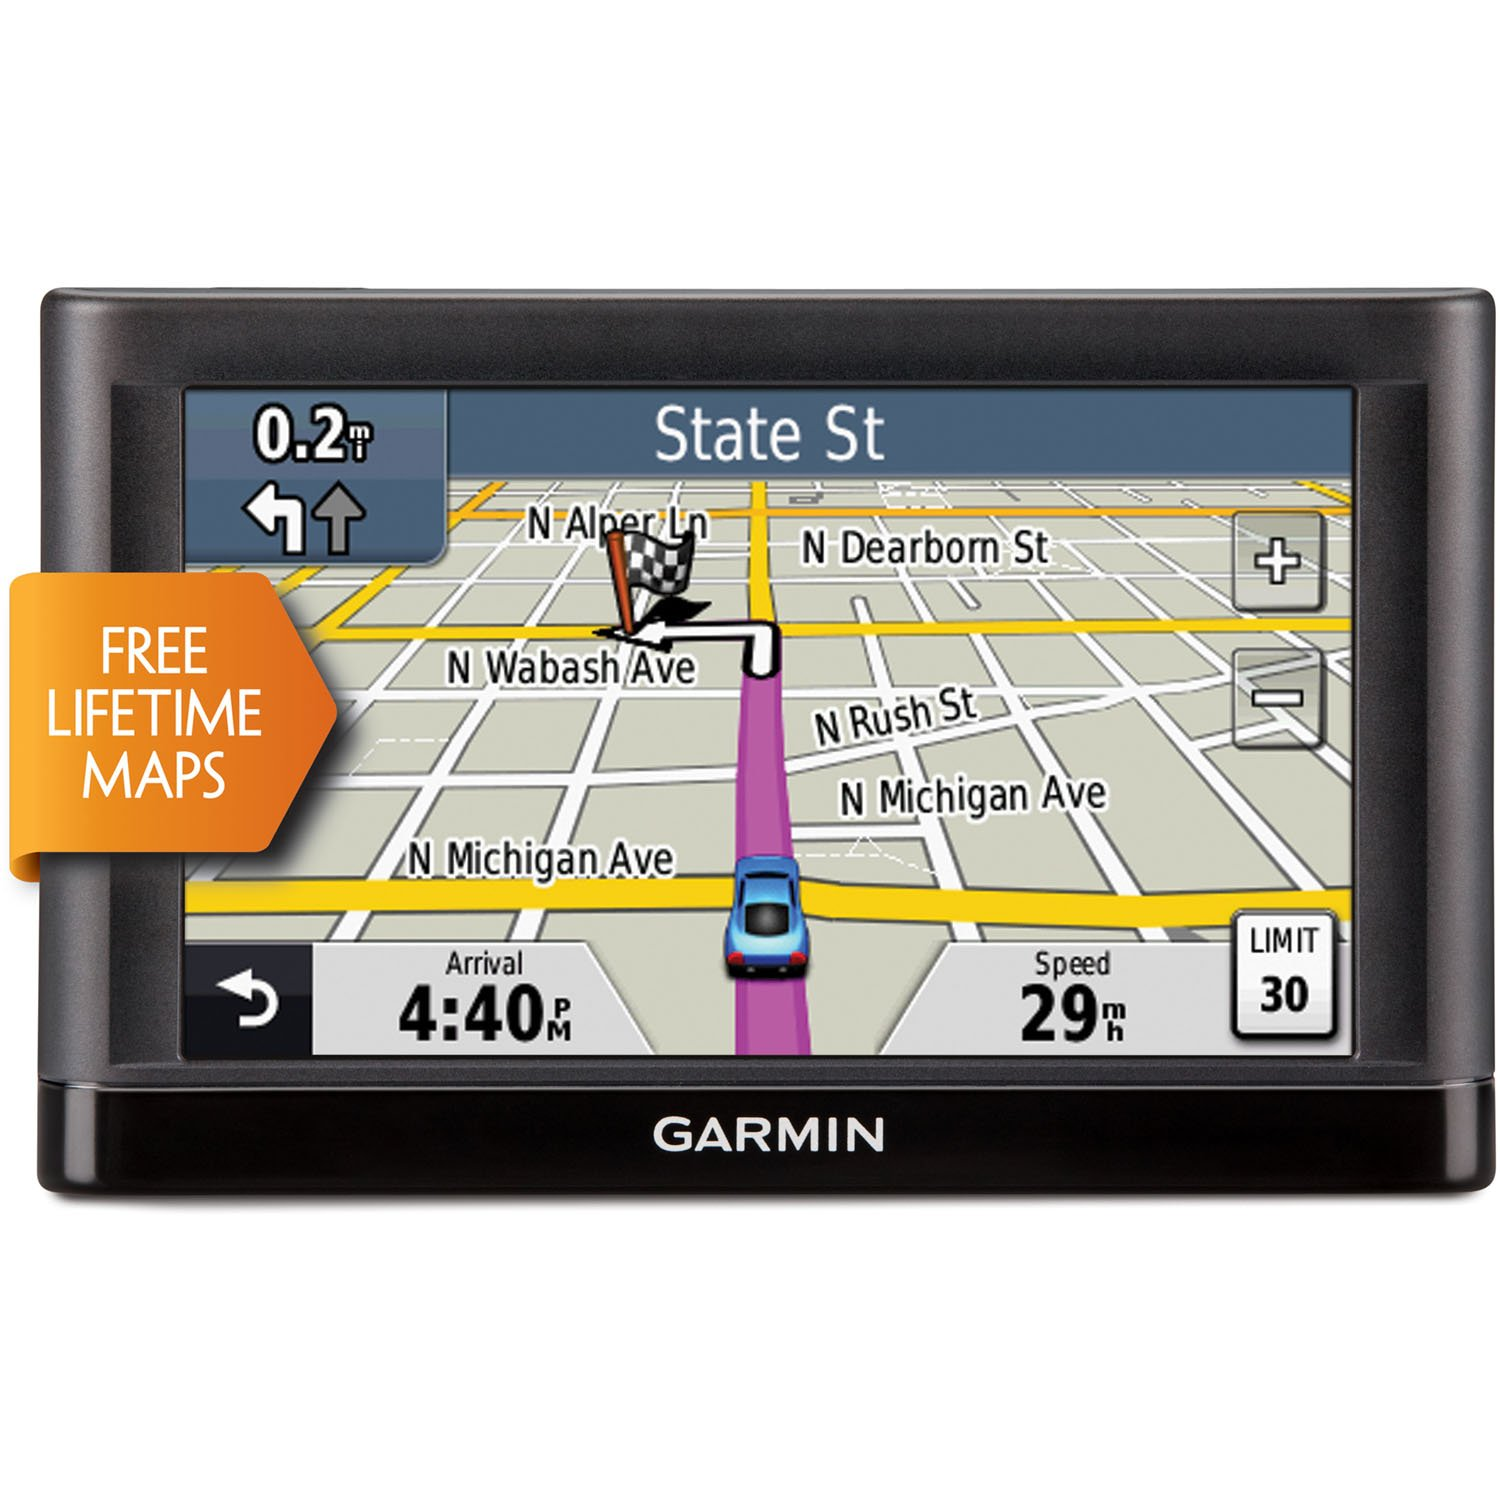 Garmin nuvi 54LM 5Inch Portable Vehicle GPS with Lifetime Maps